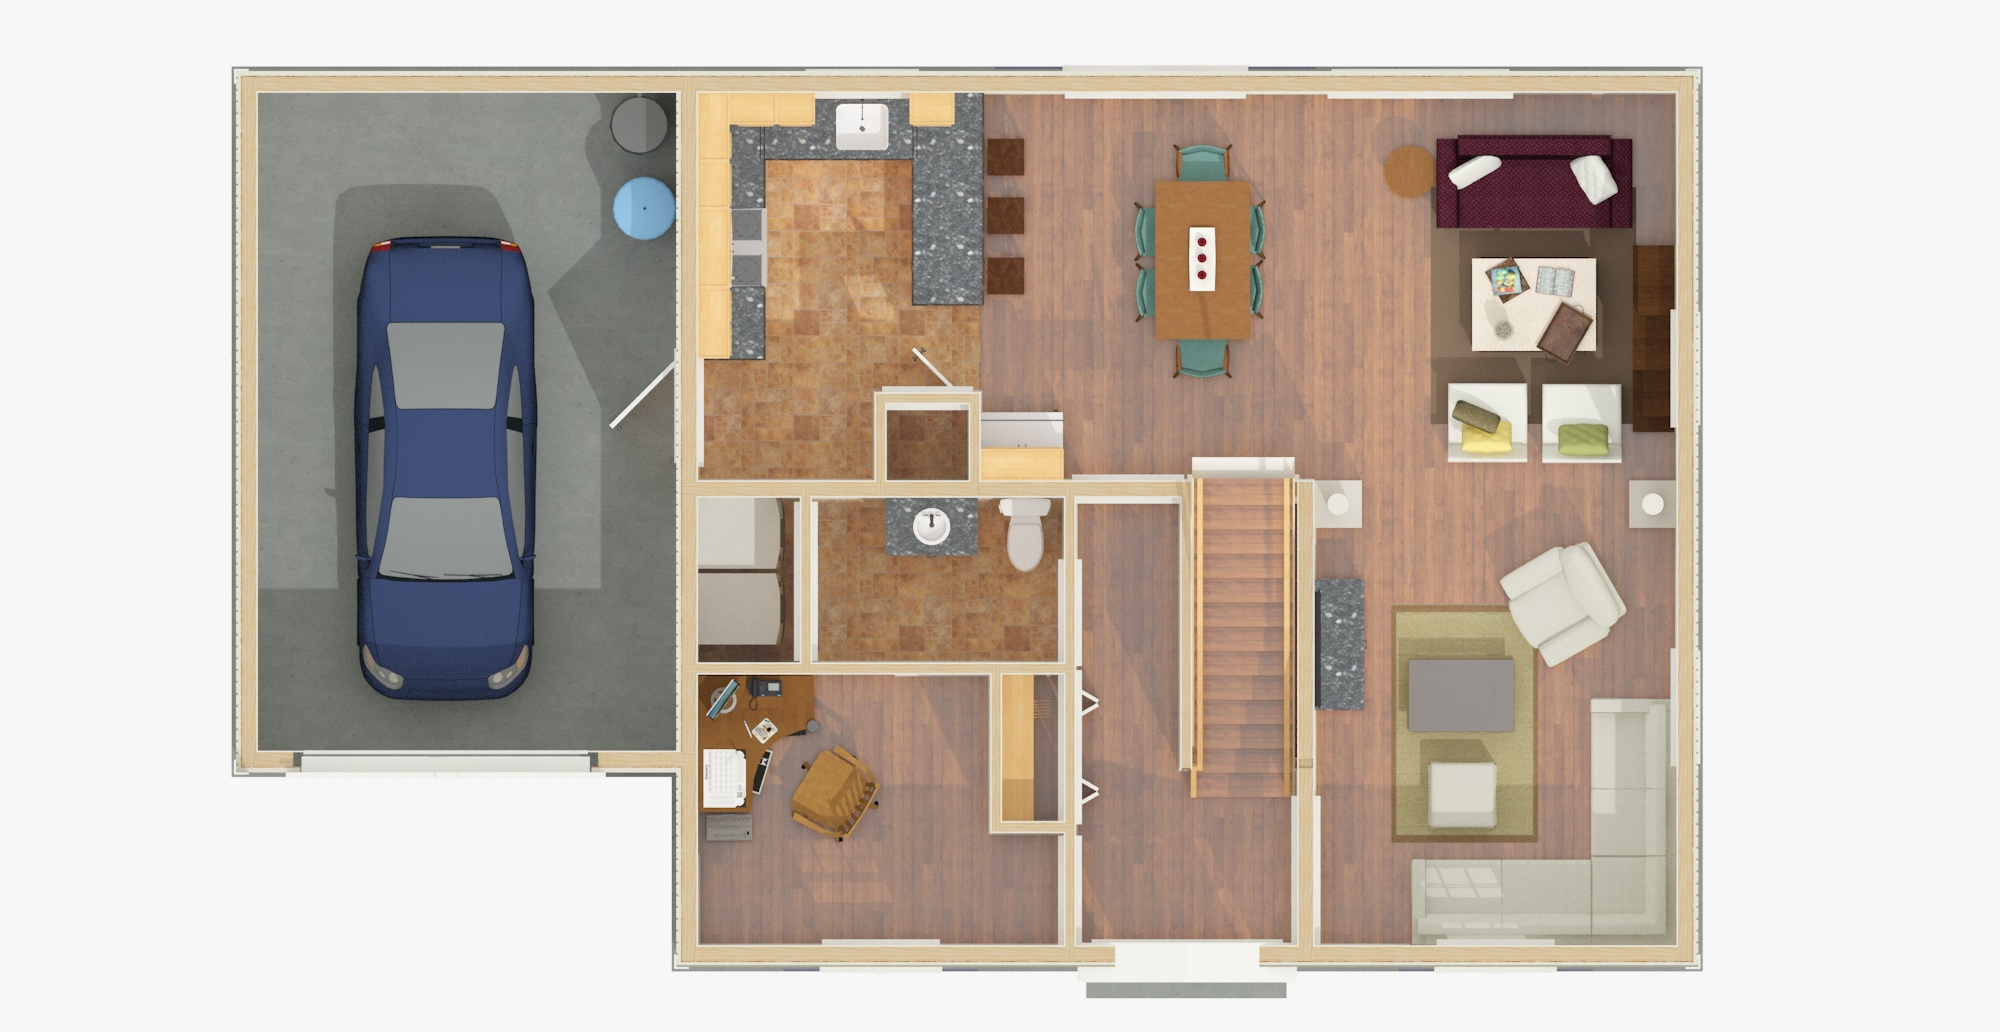 Plan Layout 1st Floor